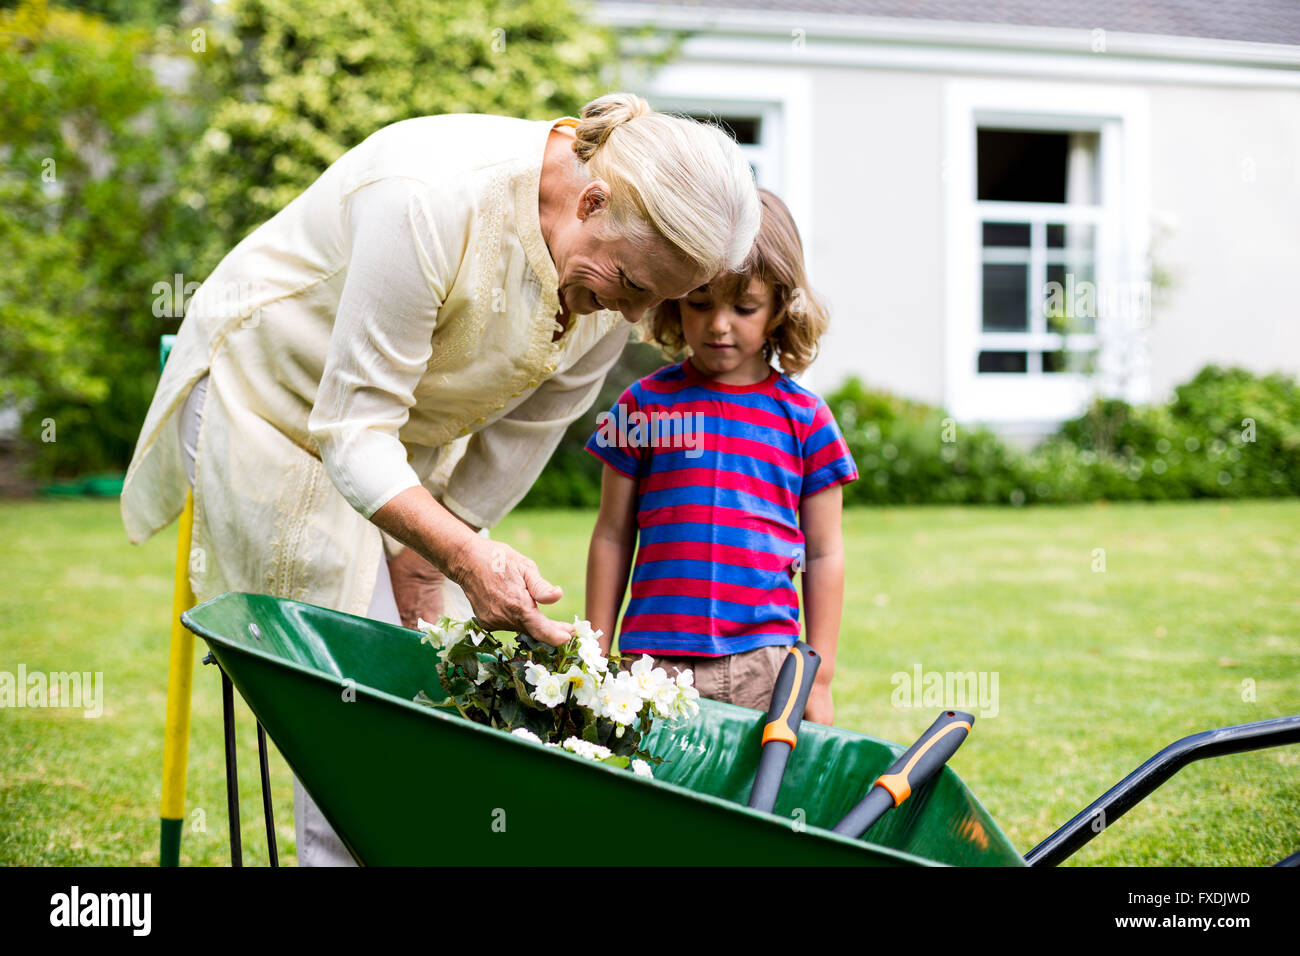 Granny with grandson looking at flowers in wheelbarrow - Stock Image